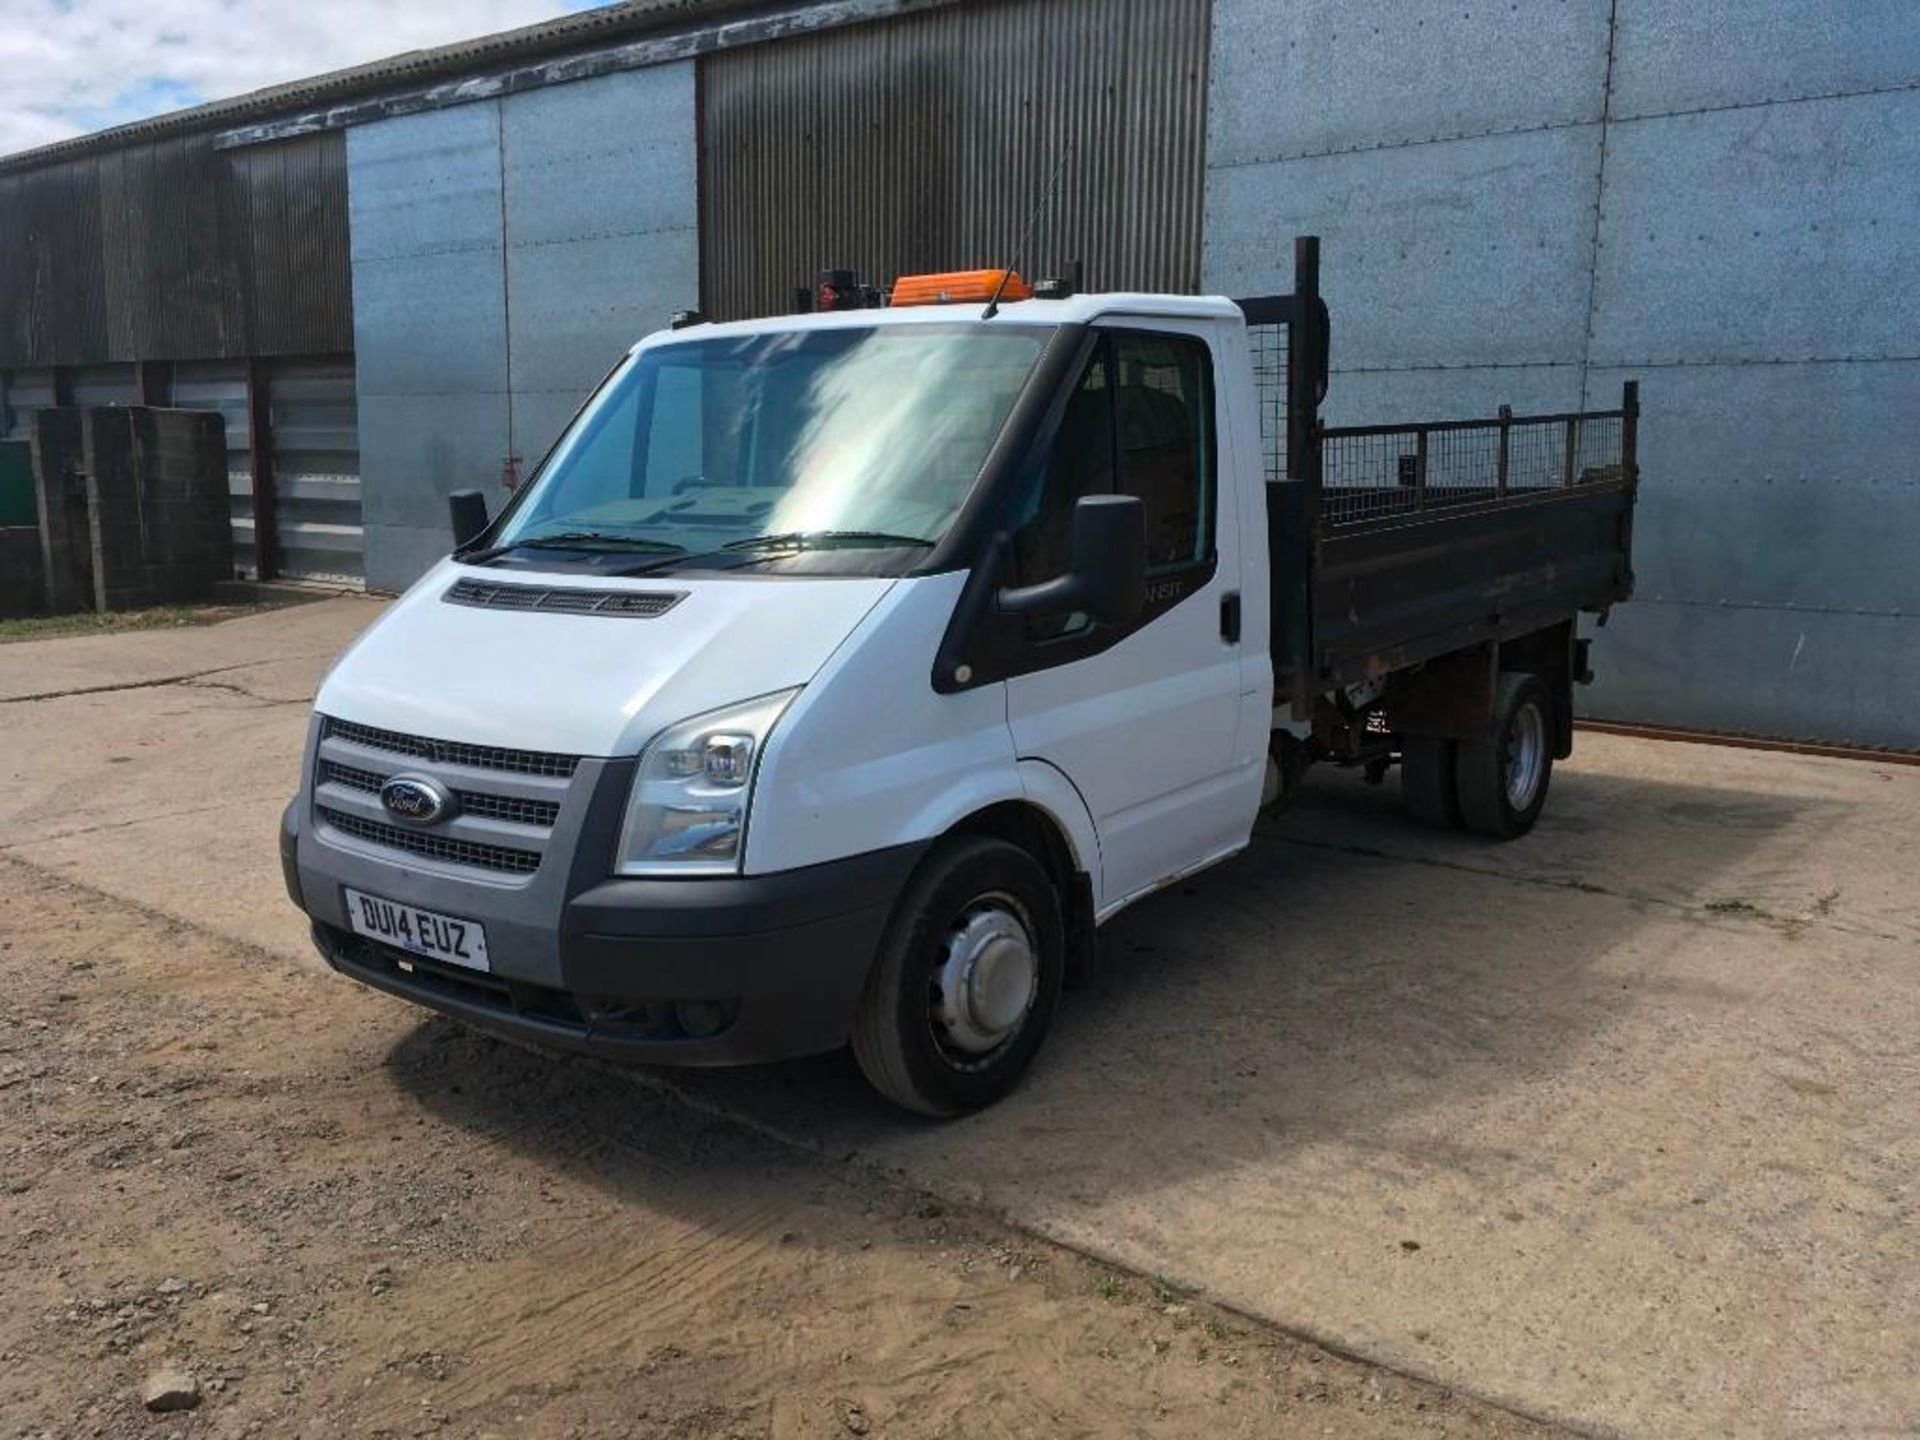 2014 Ford Transit 100 T350 with Brit-Tipp tipping body c/w independently manufactured crane with 0.5